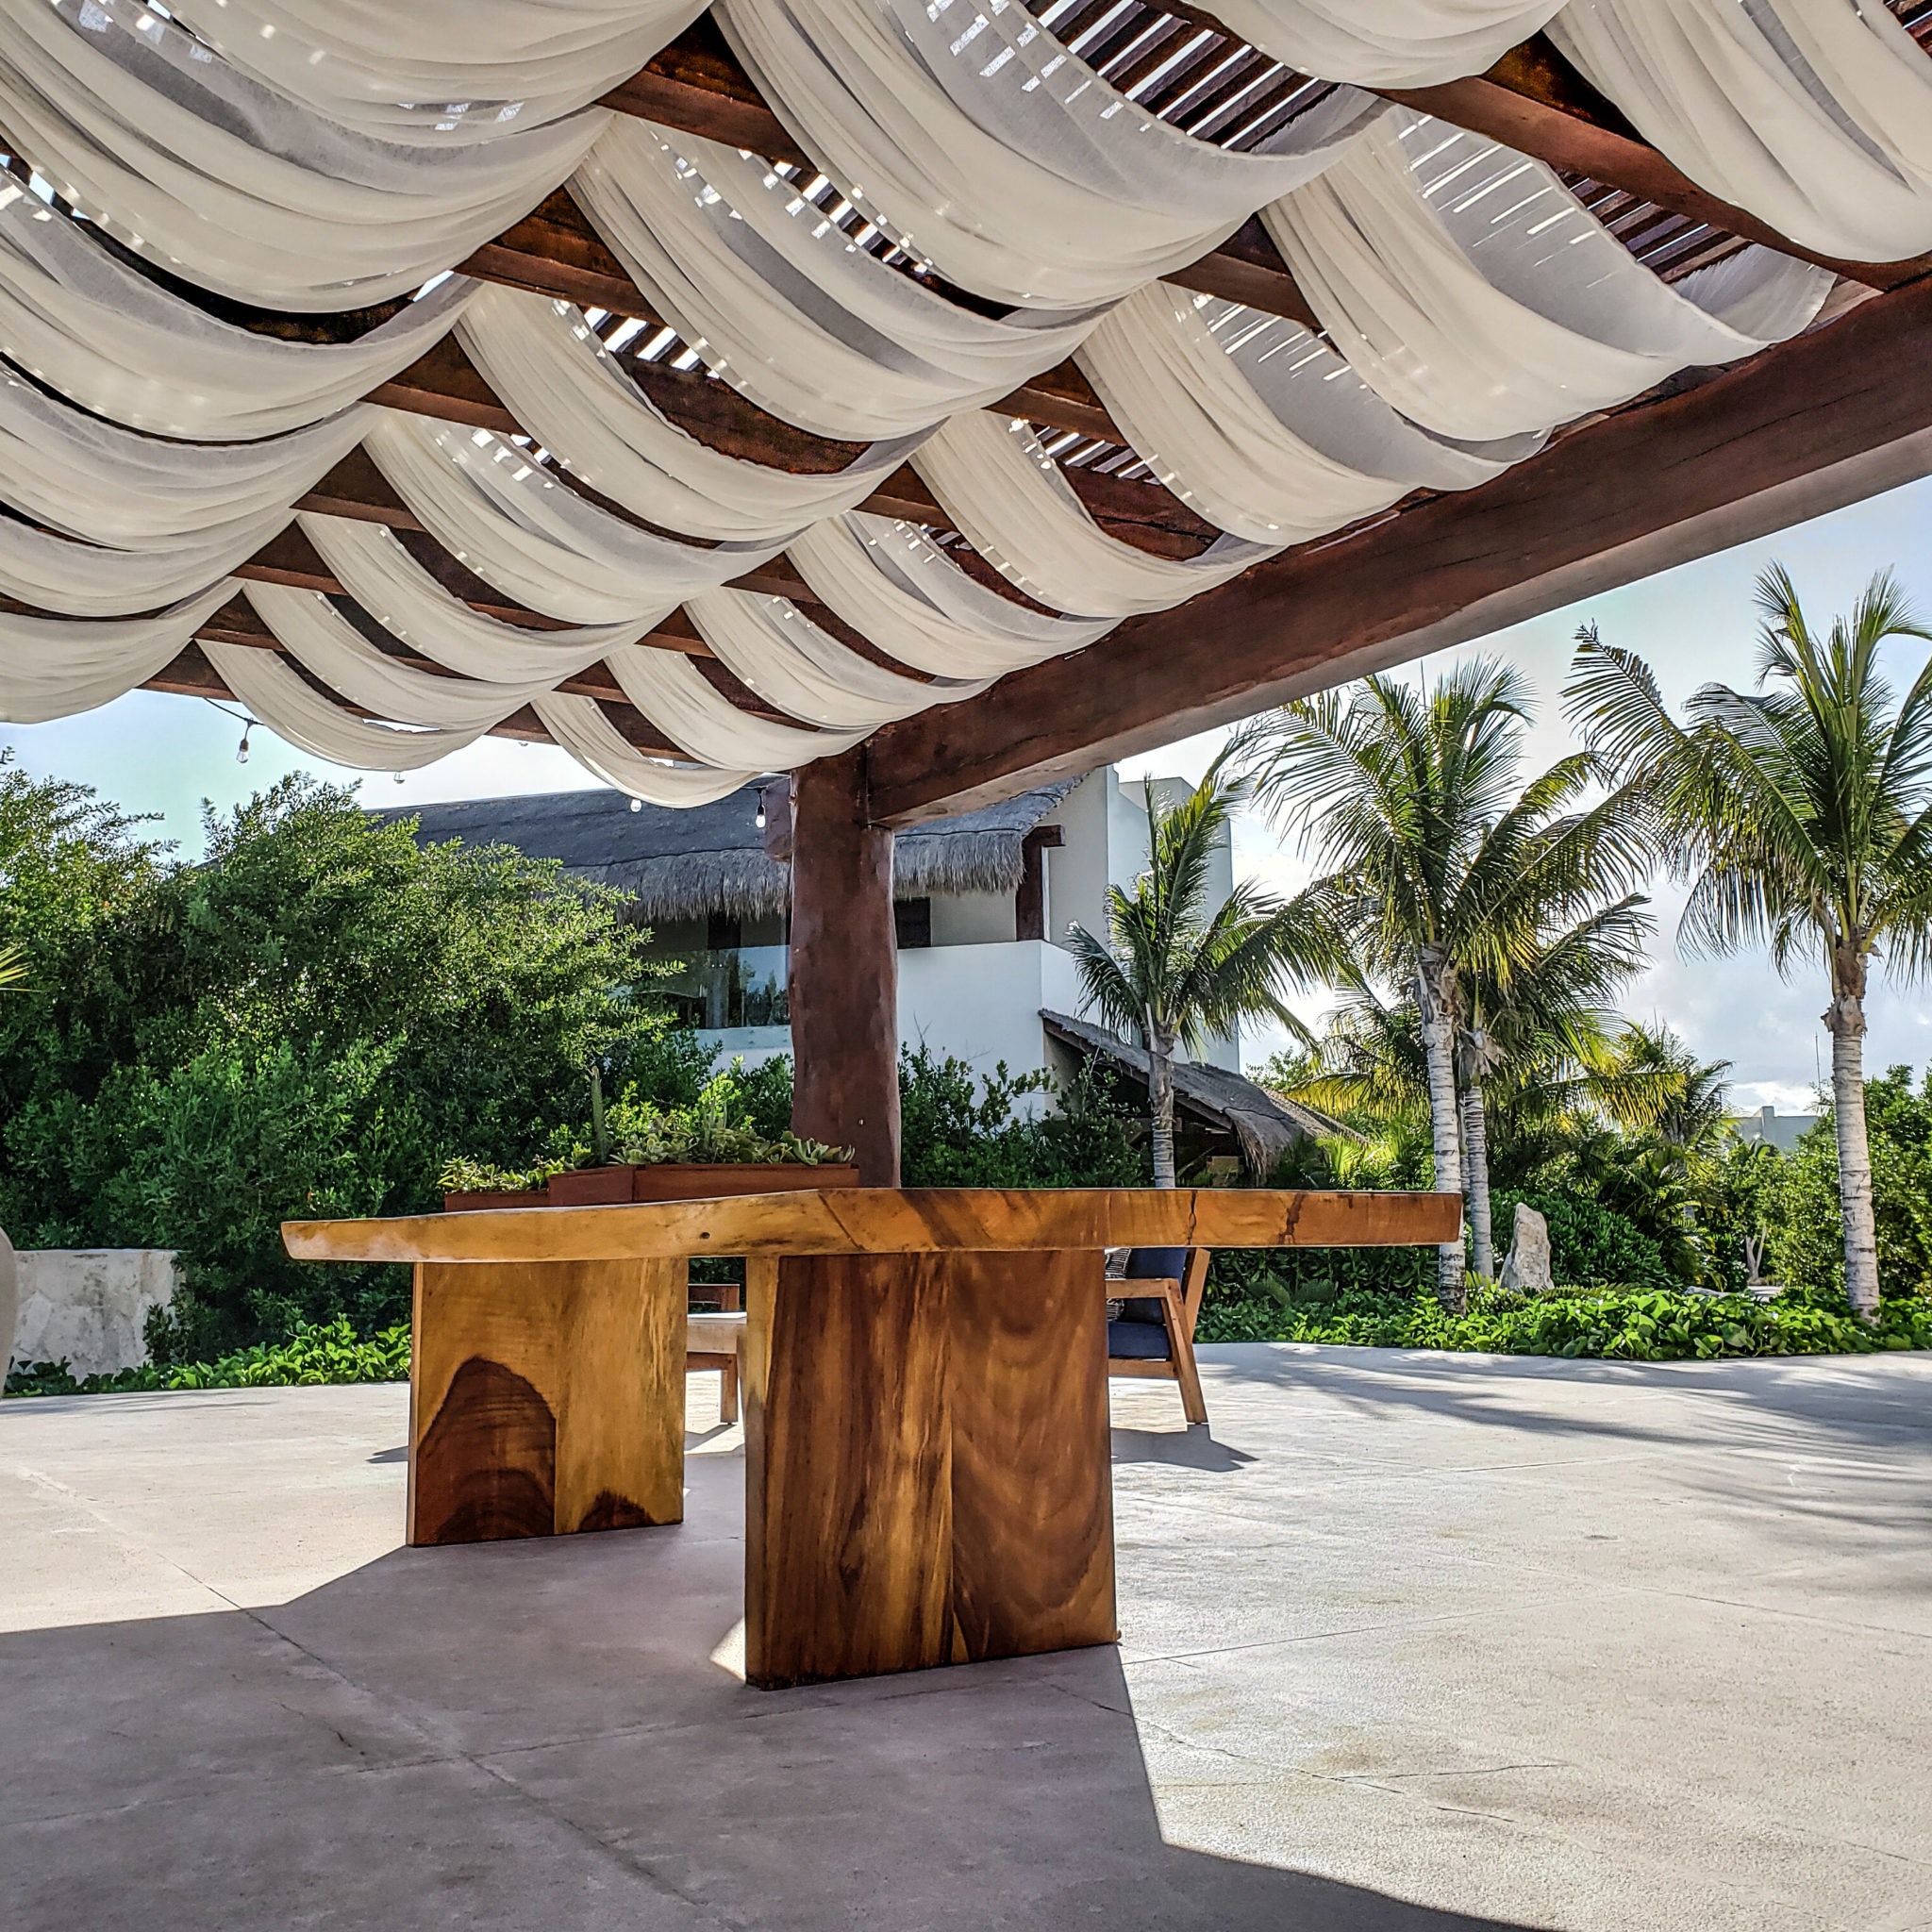 Chable Maroma Resort - Quintana Roo - Playa Del Carmen - Playa Maroma - Outdoor Lounge